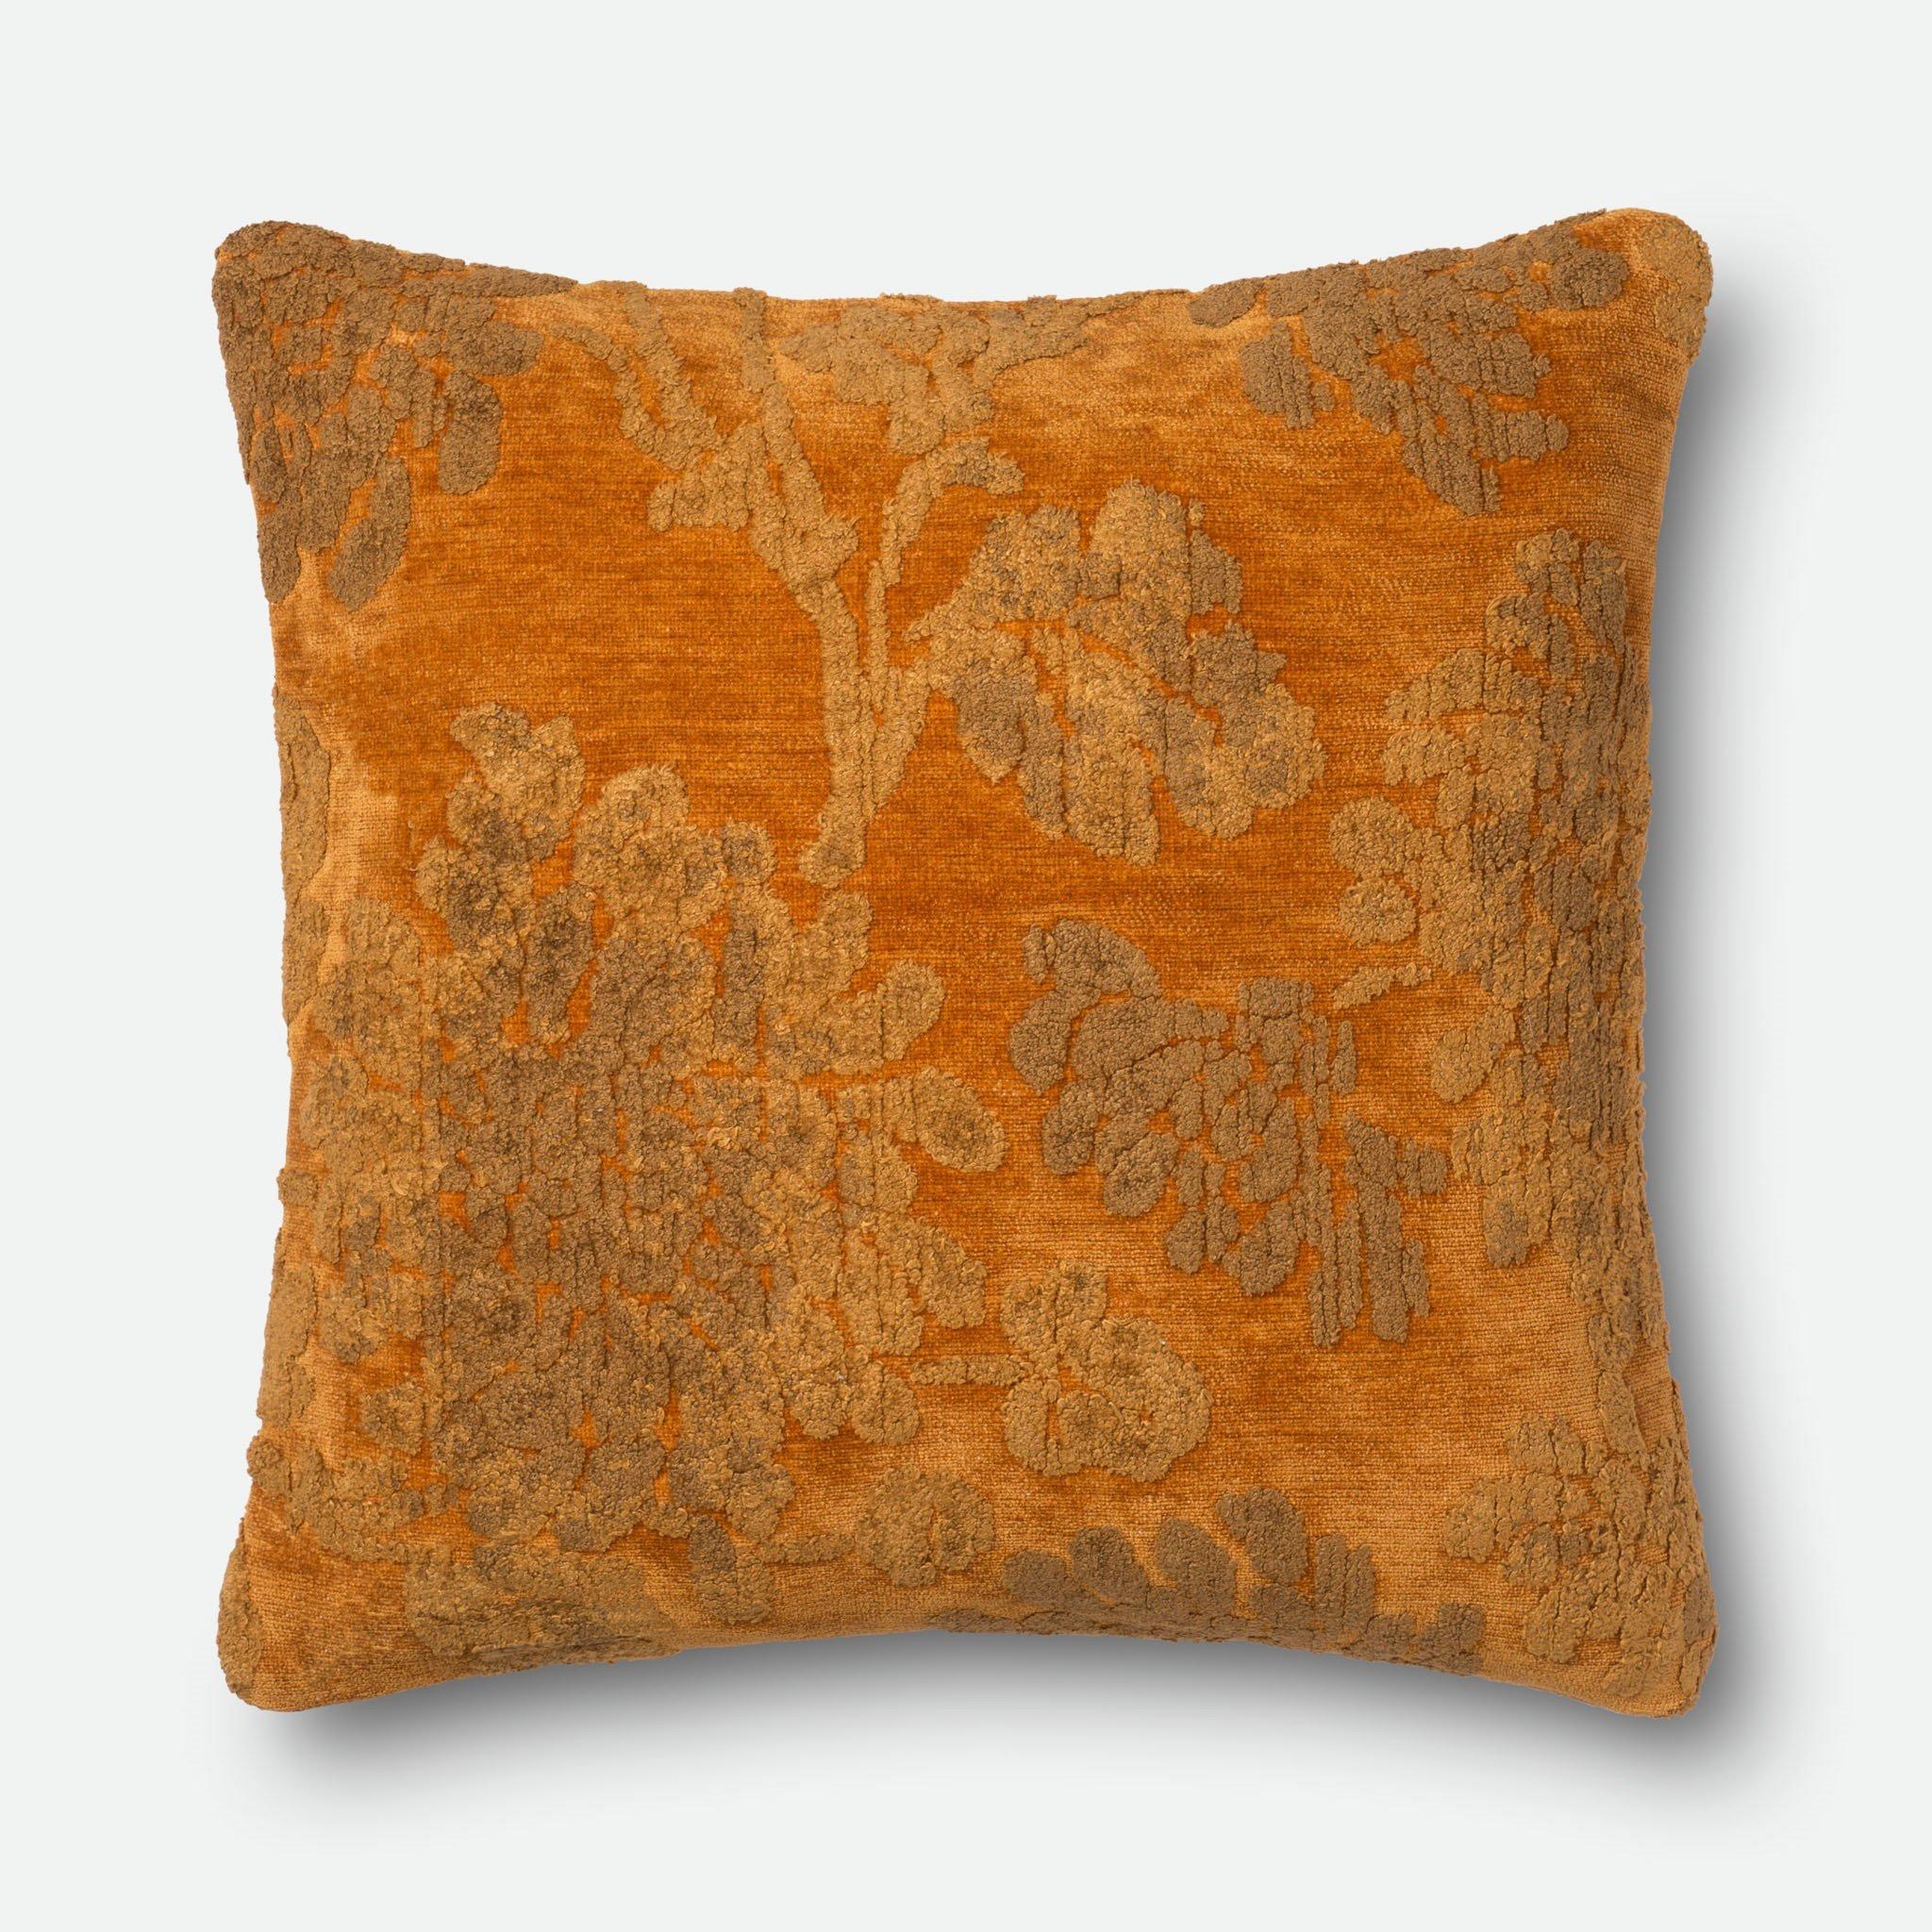 Loloi  Accent  Pillow  DSETGPI13AI00PIL3  Aura  100%  Viscose  with  Down  Fill  22''  x  22'' by Loloi (Image #1)